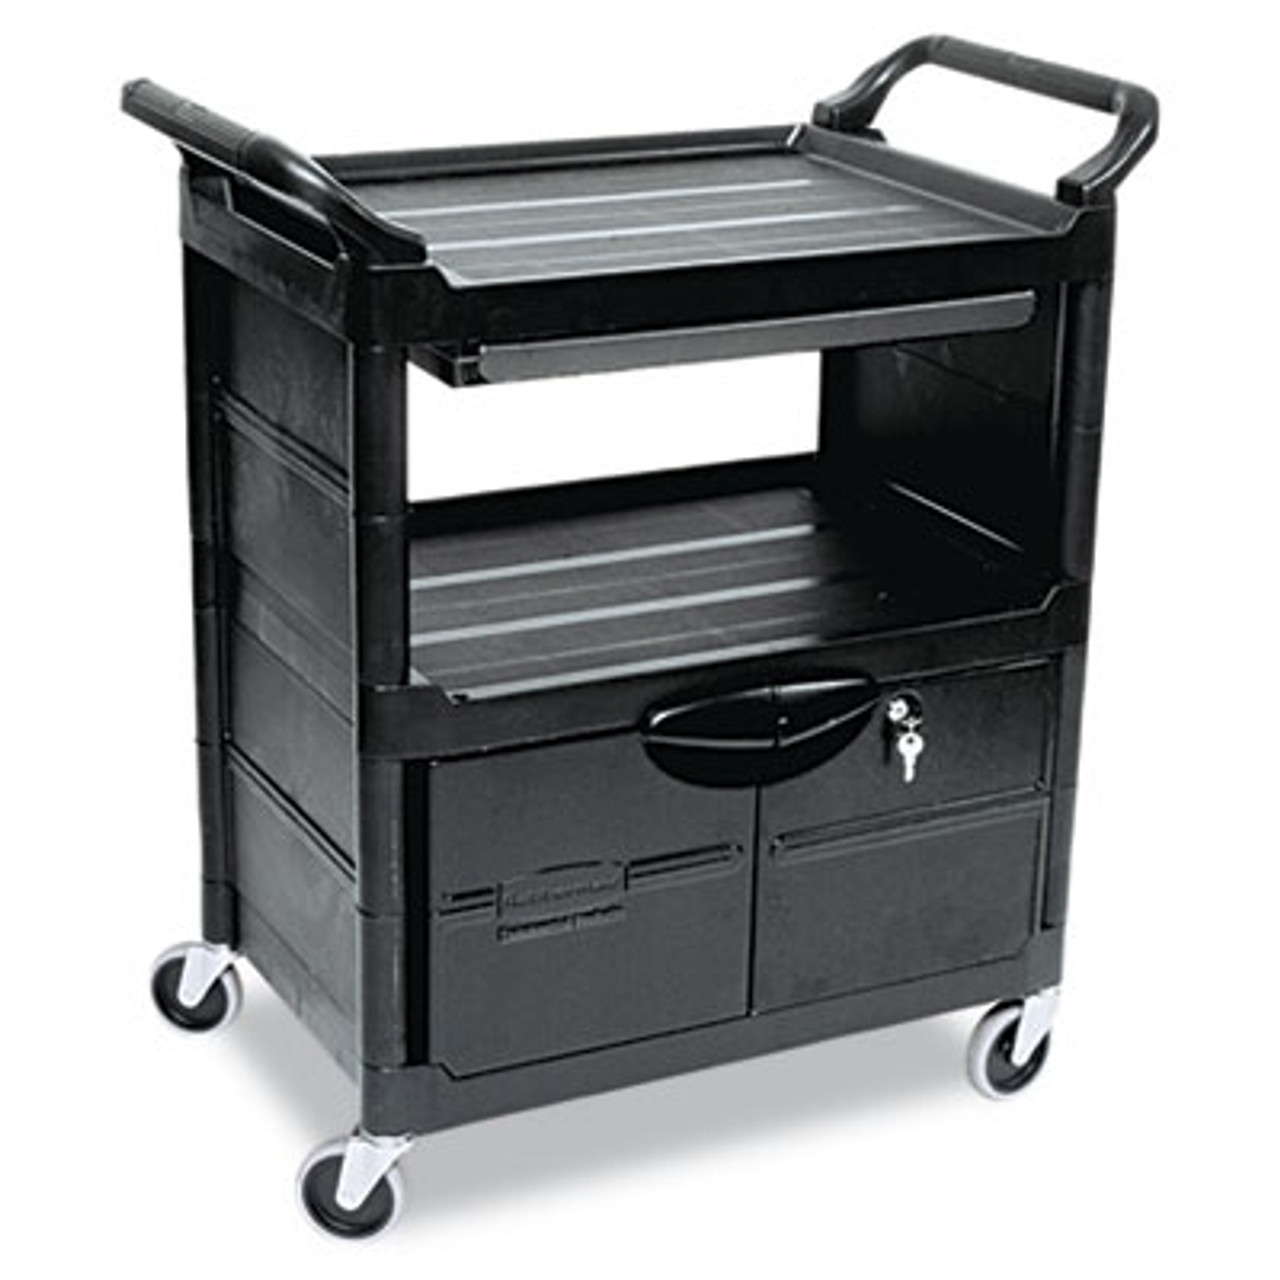 Rubbermaid Commercial Utility Cart w/Locking Doors, 2-Shelf, 33-5/8w x 18-5/8d x 37-3/4h, Black